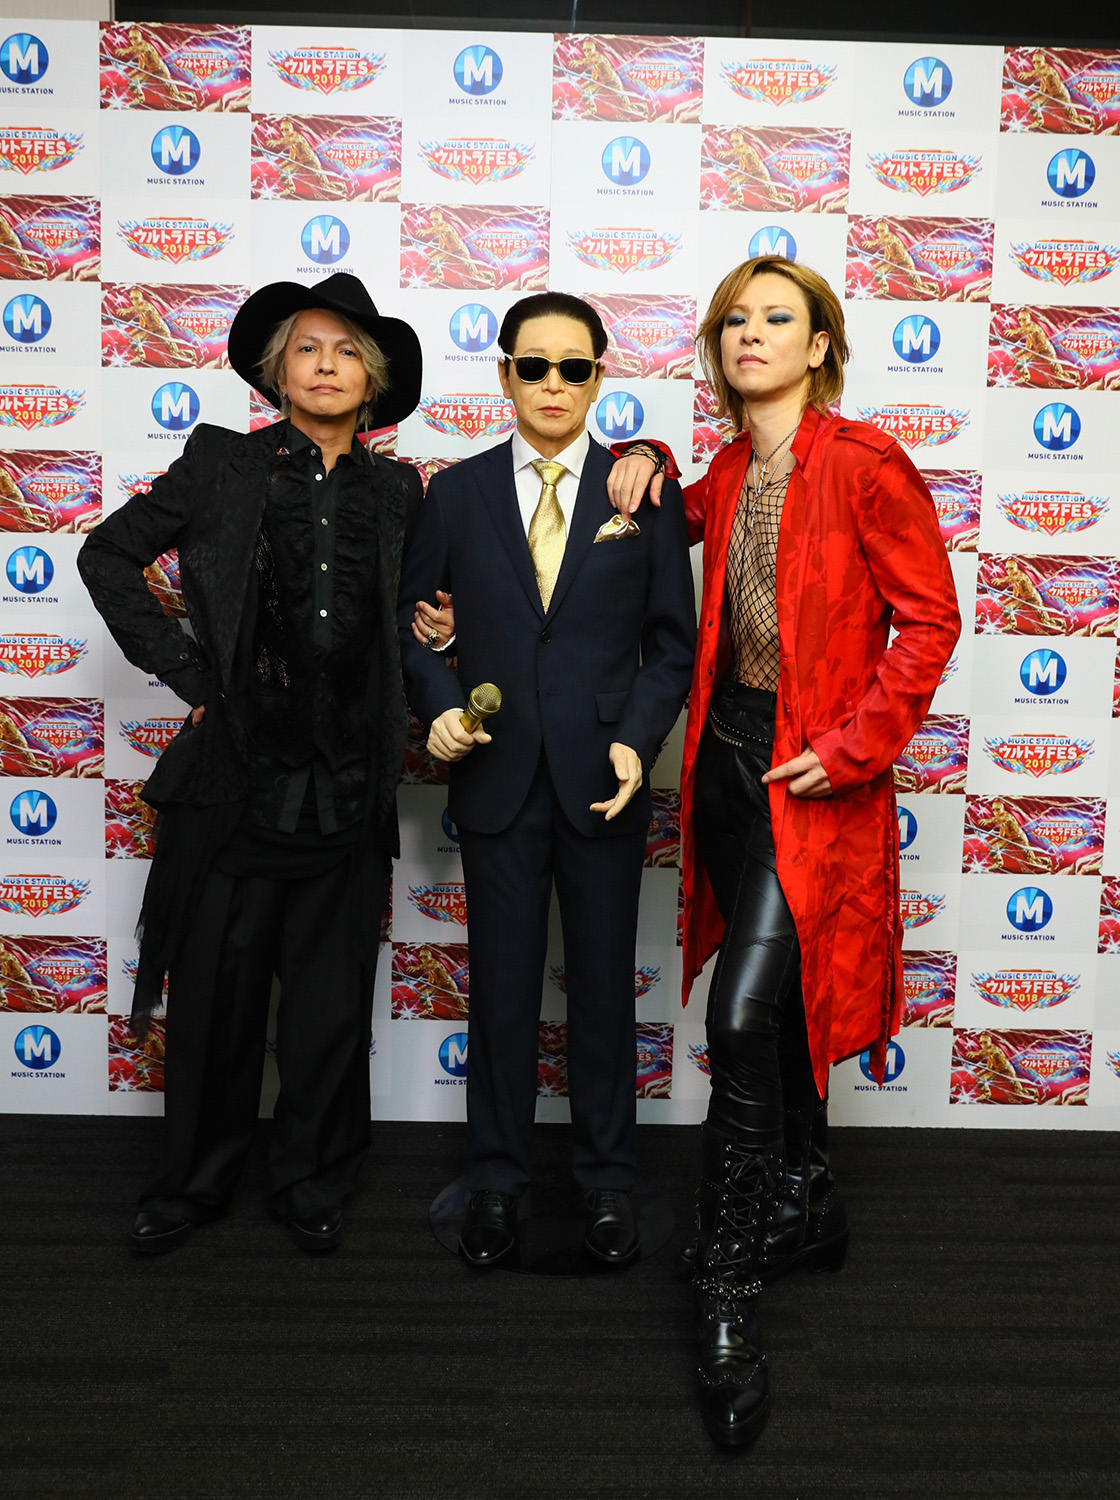 JRock247-Yoshiki-Hyde-Red-Swan-Music-Station-20180917-K5406